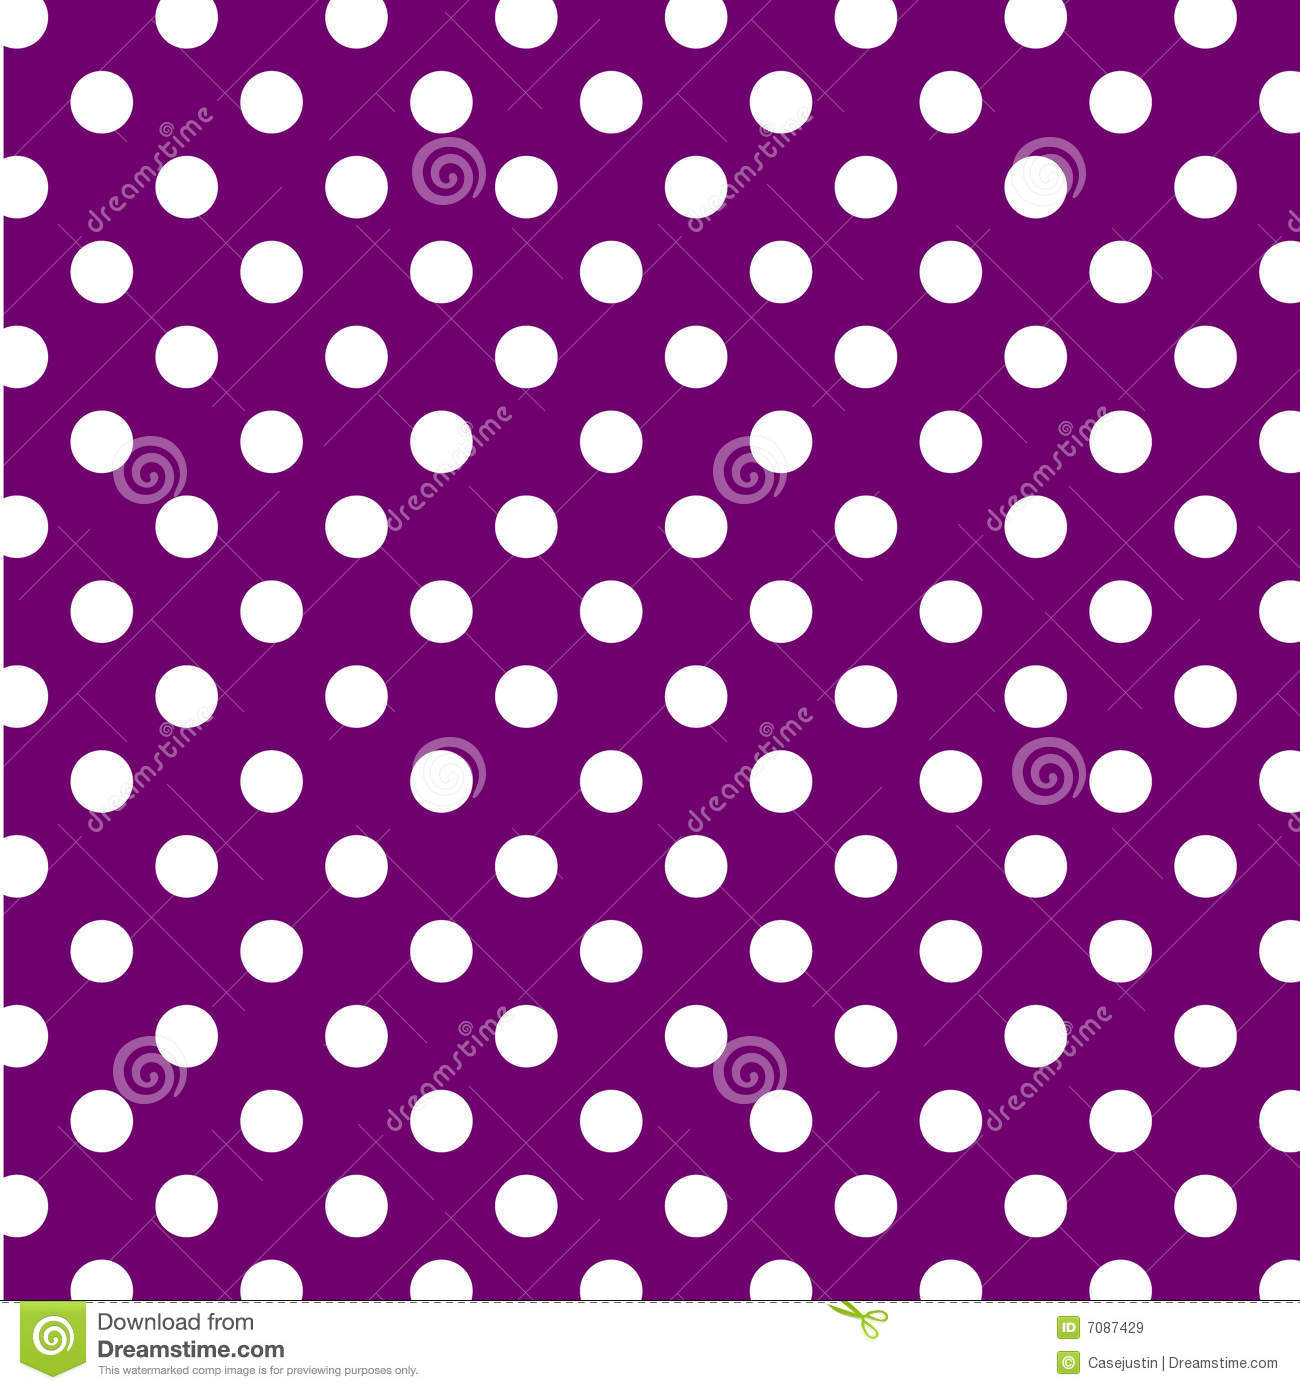 Big White Polka Dots On Purple, Seamless Royalty Free Stock Images ...: becuo.com/pink-and-white-polka-dots-clip-art